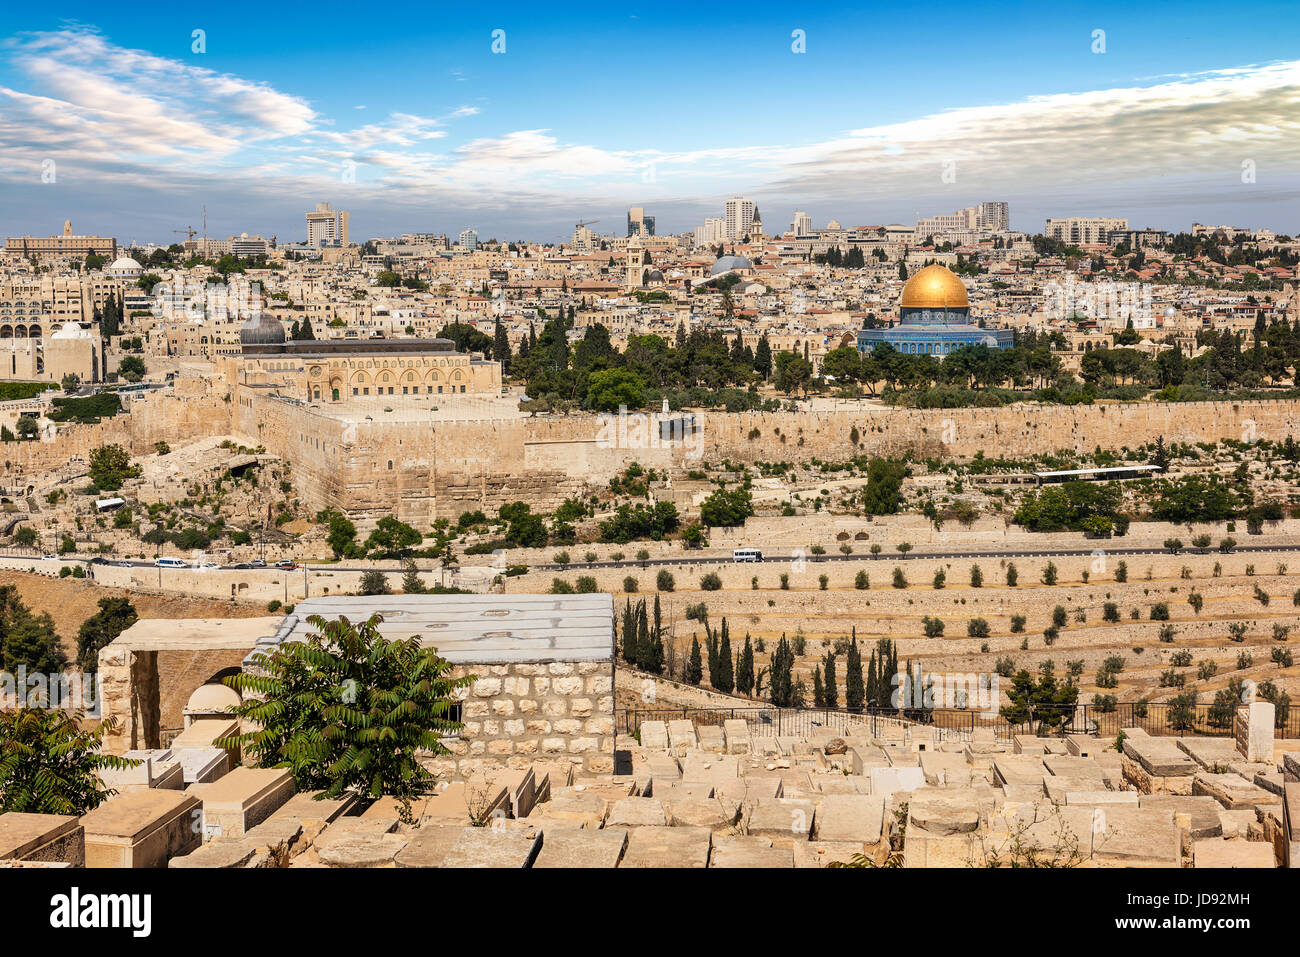 View of Jerusalem Old city and the Temple Mount, Dome of the Rock and Al Aqsa Mosque from the Mount of Olives in - Stock Image